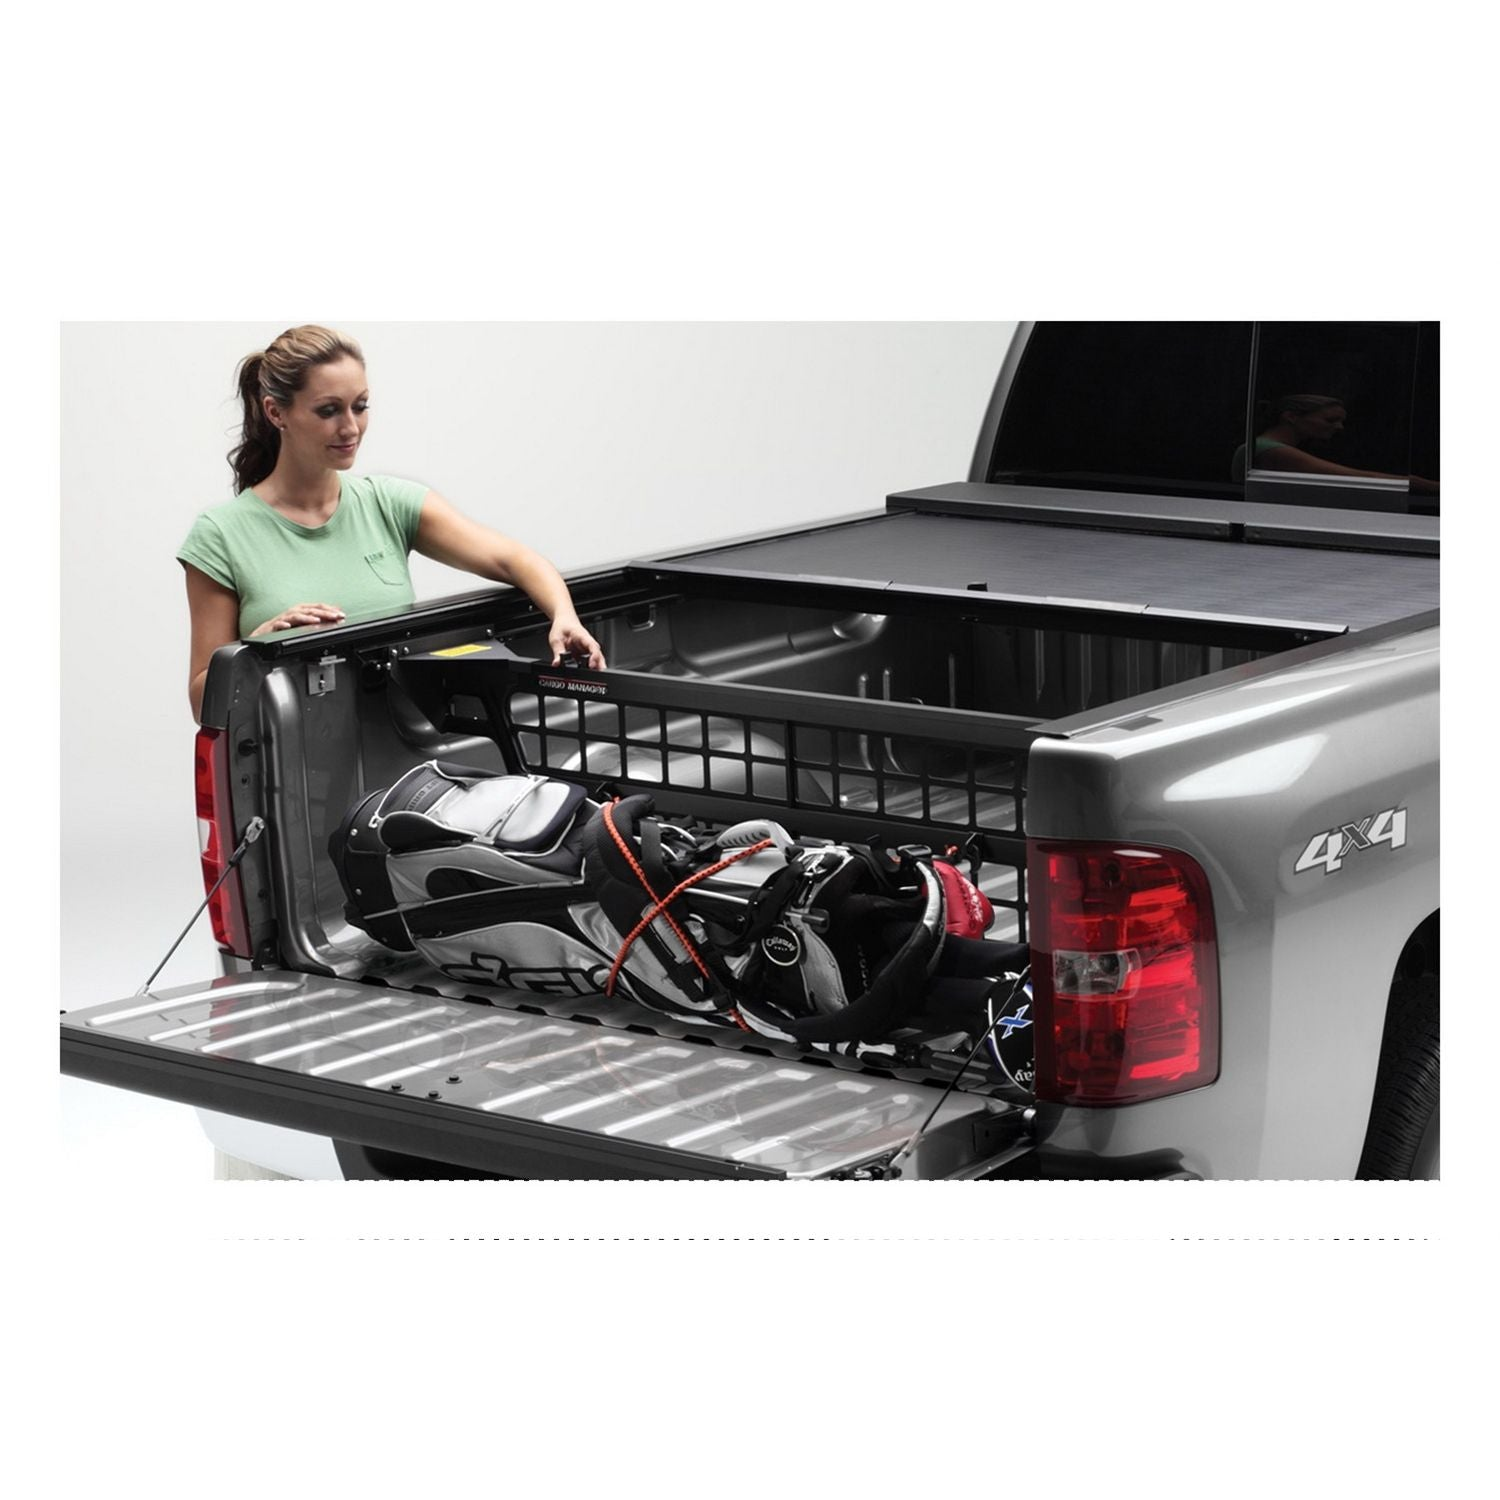 Roll-N-Lock CM500 Cargo Manager Rolling Truck Bed Divider Works Only with Roll-N-Lock Covers for 1990-1994 Toyota Pickup; 1995-2004 Tacoma Regular & Extended Cab | Fits 6 Ft. Bed